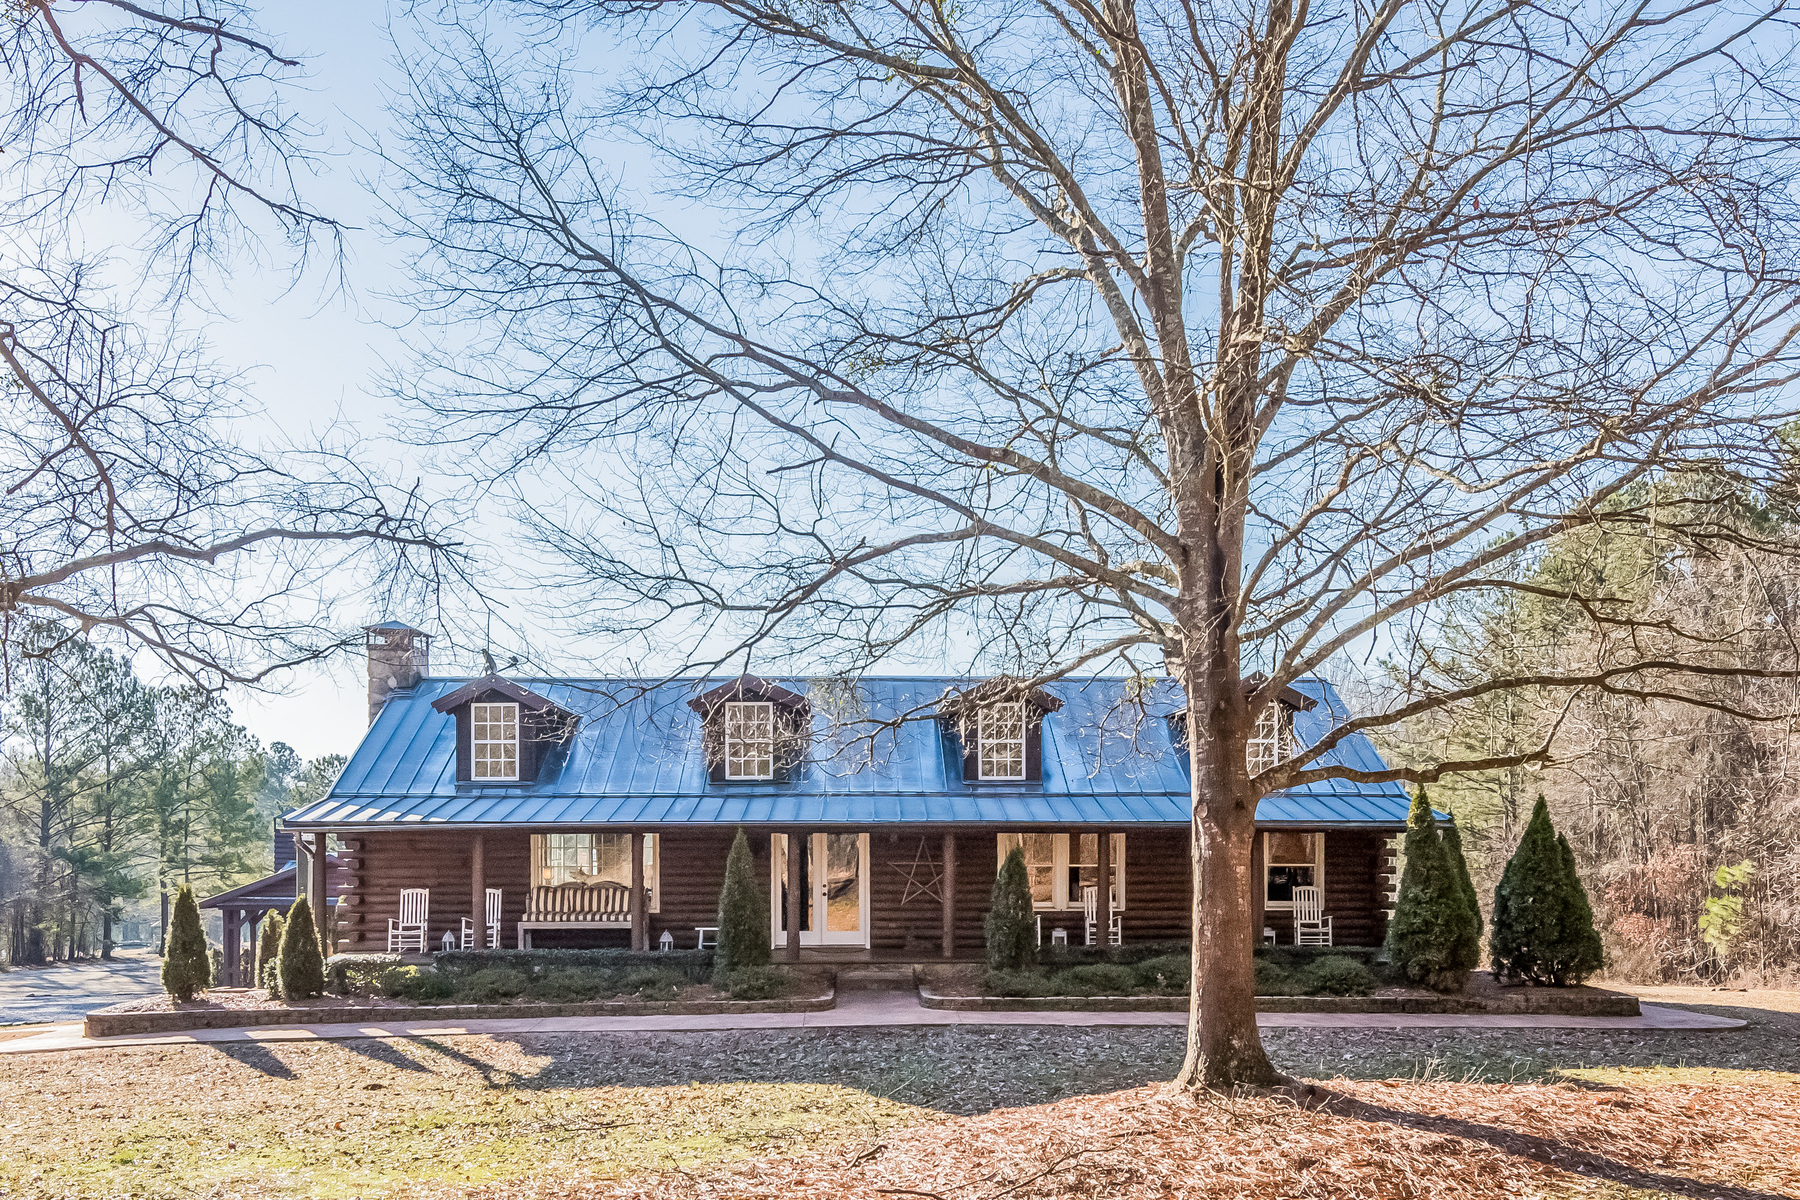 단독 가정 주택 용 매매 에 Stunning Equestrian Property With Income Potential 12000 Hutcheson Ferry Road Chattahoochee Hills, 조지아, 30268 미국